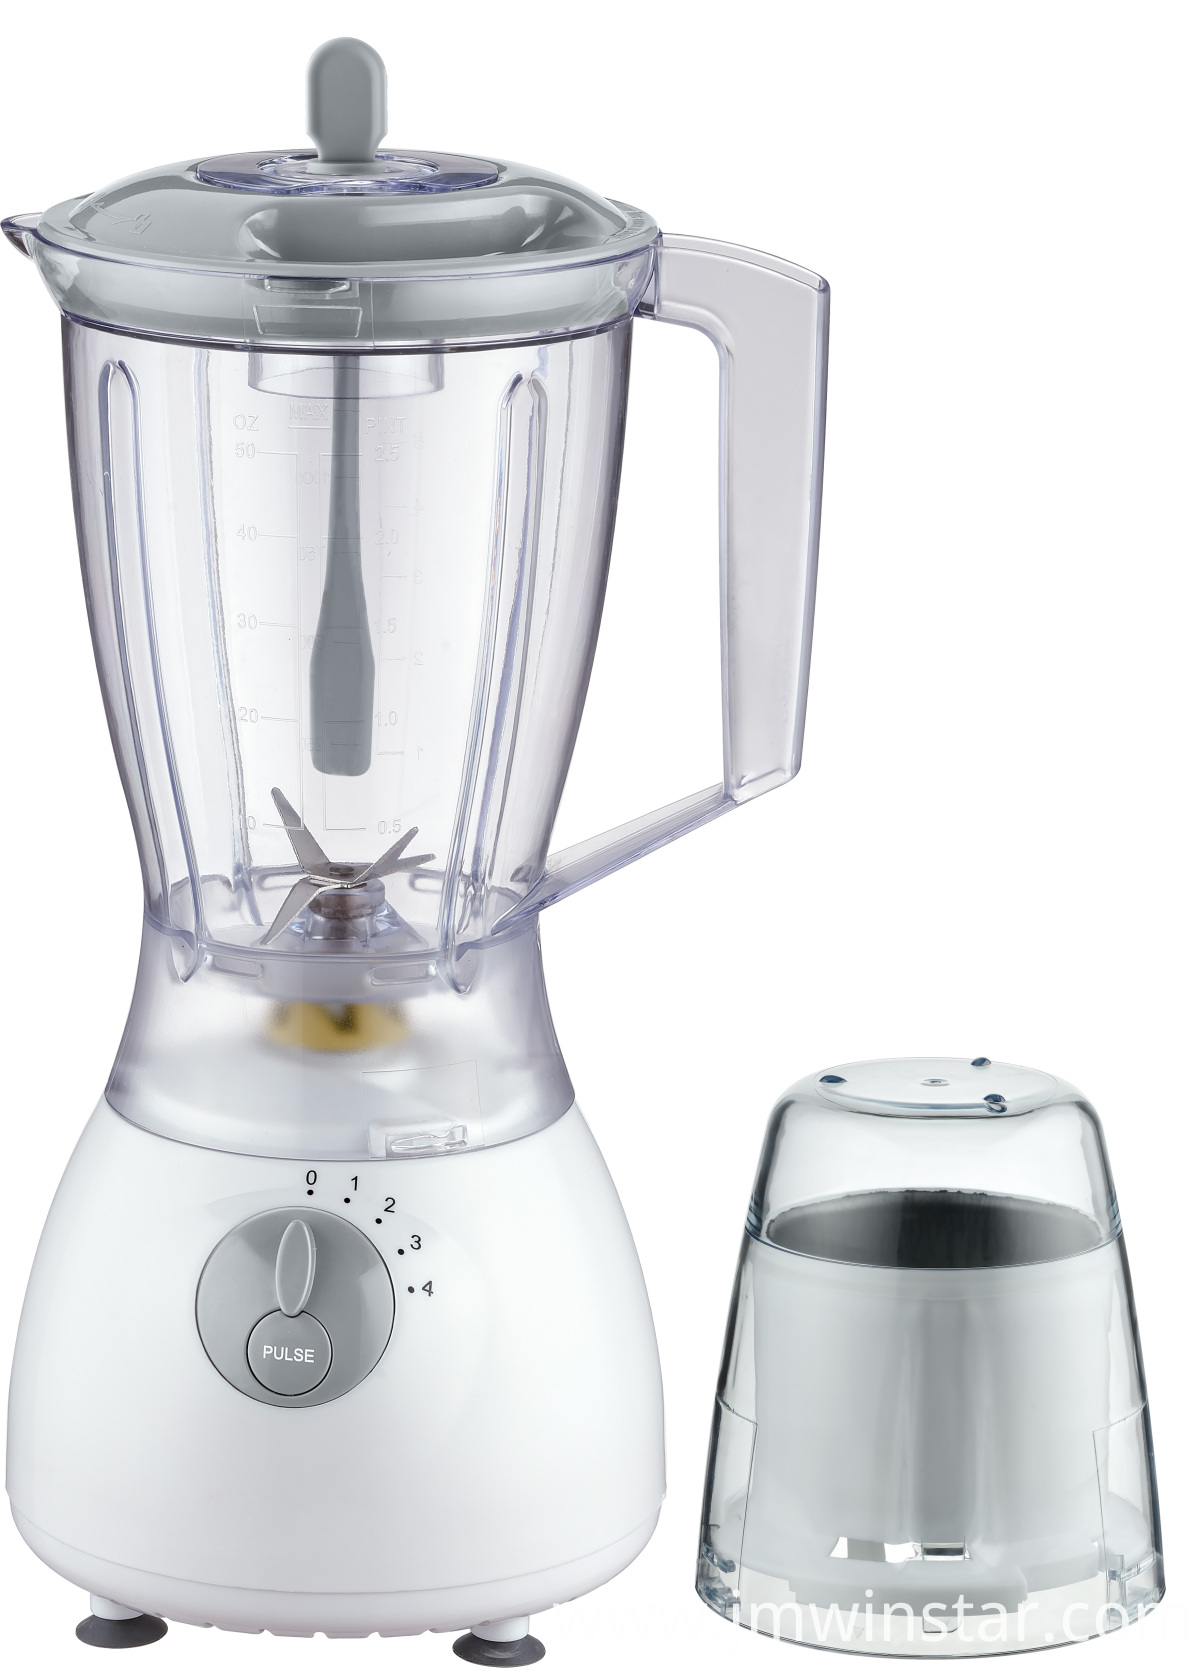 Commercial and Household Chromed Color Blender